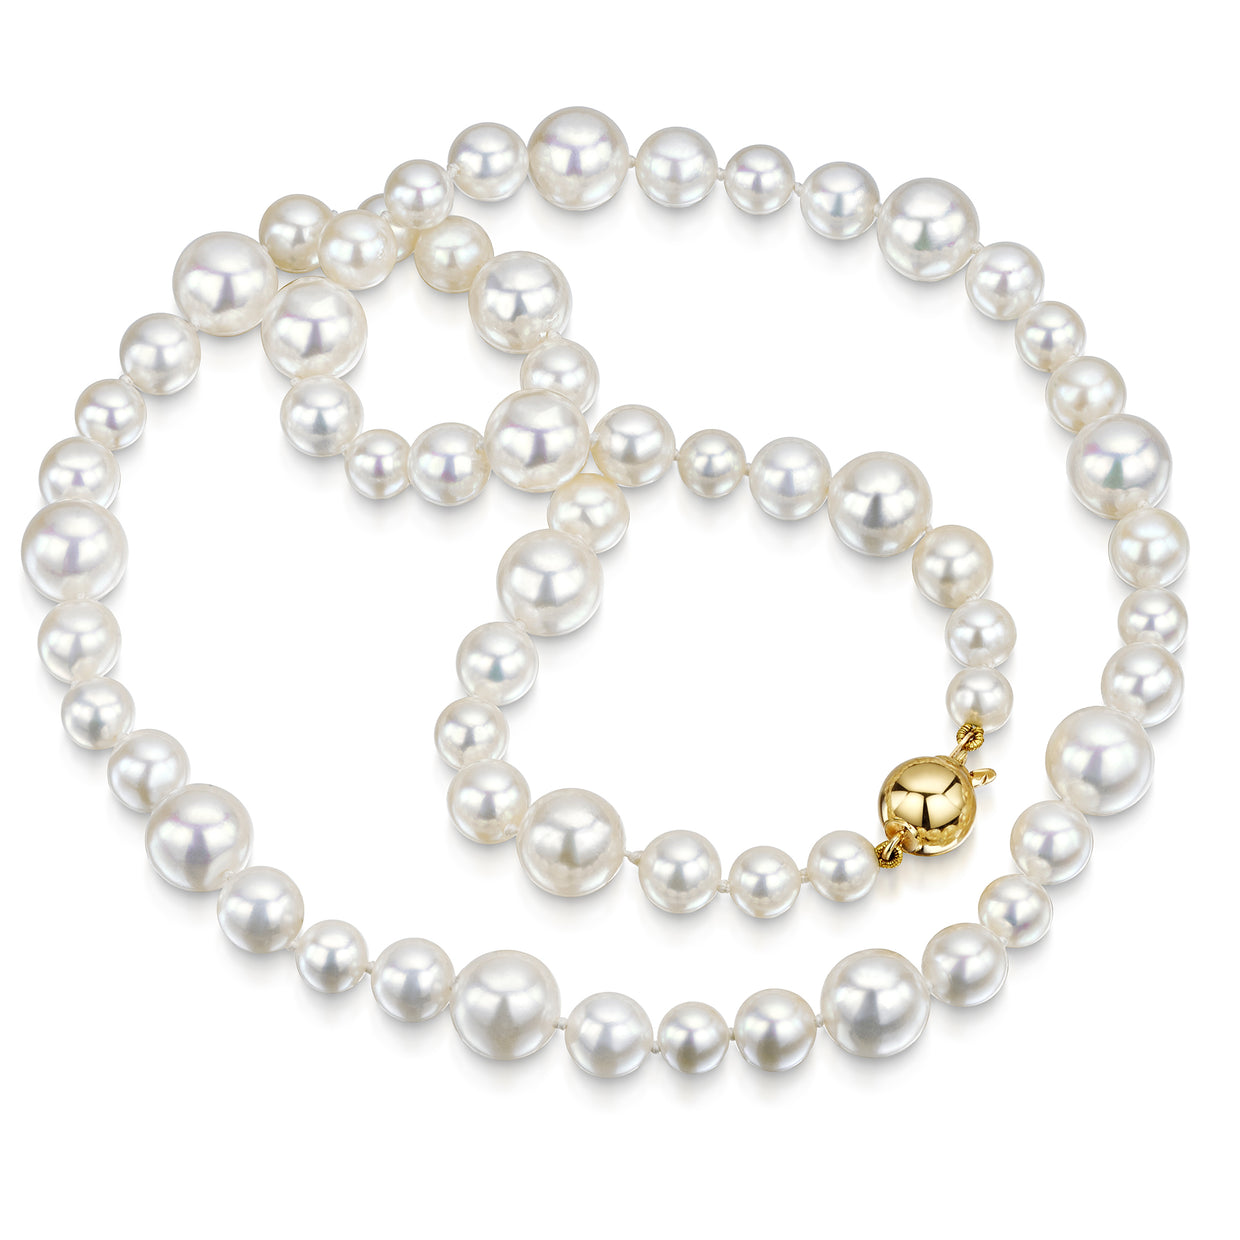 Cultured Pearl Necklace with 18ct Yellow Gold Clasp-H & I-Hamilton & Inches